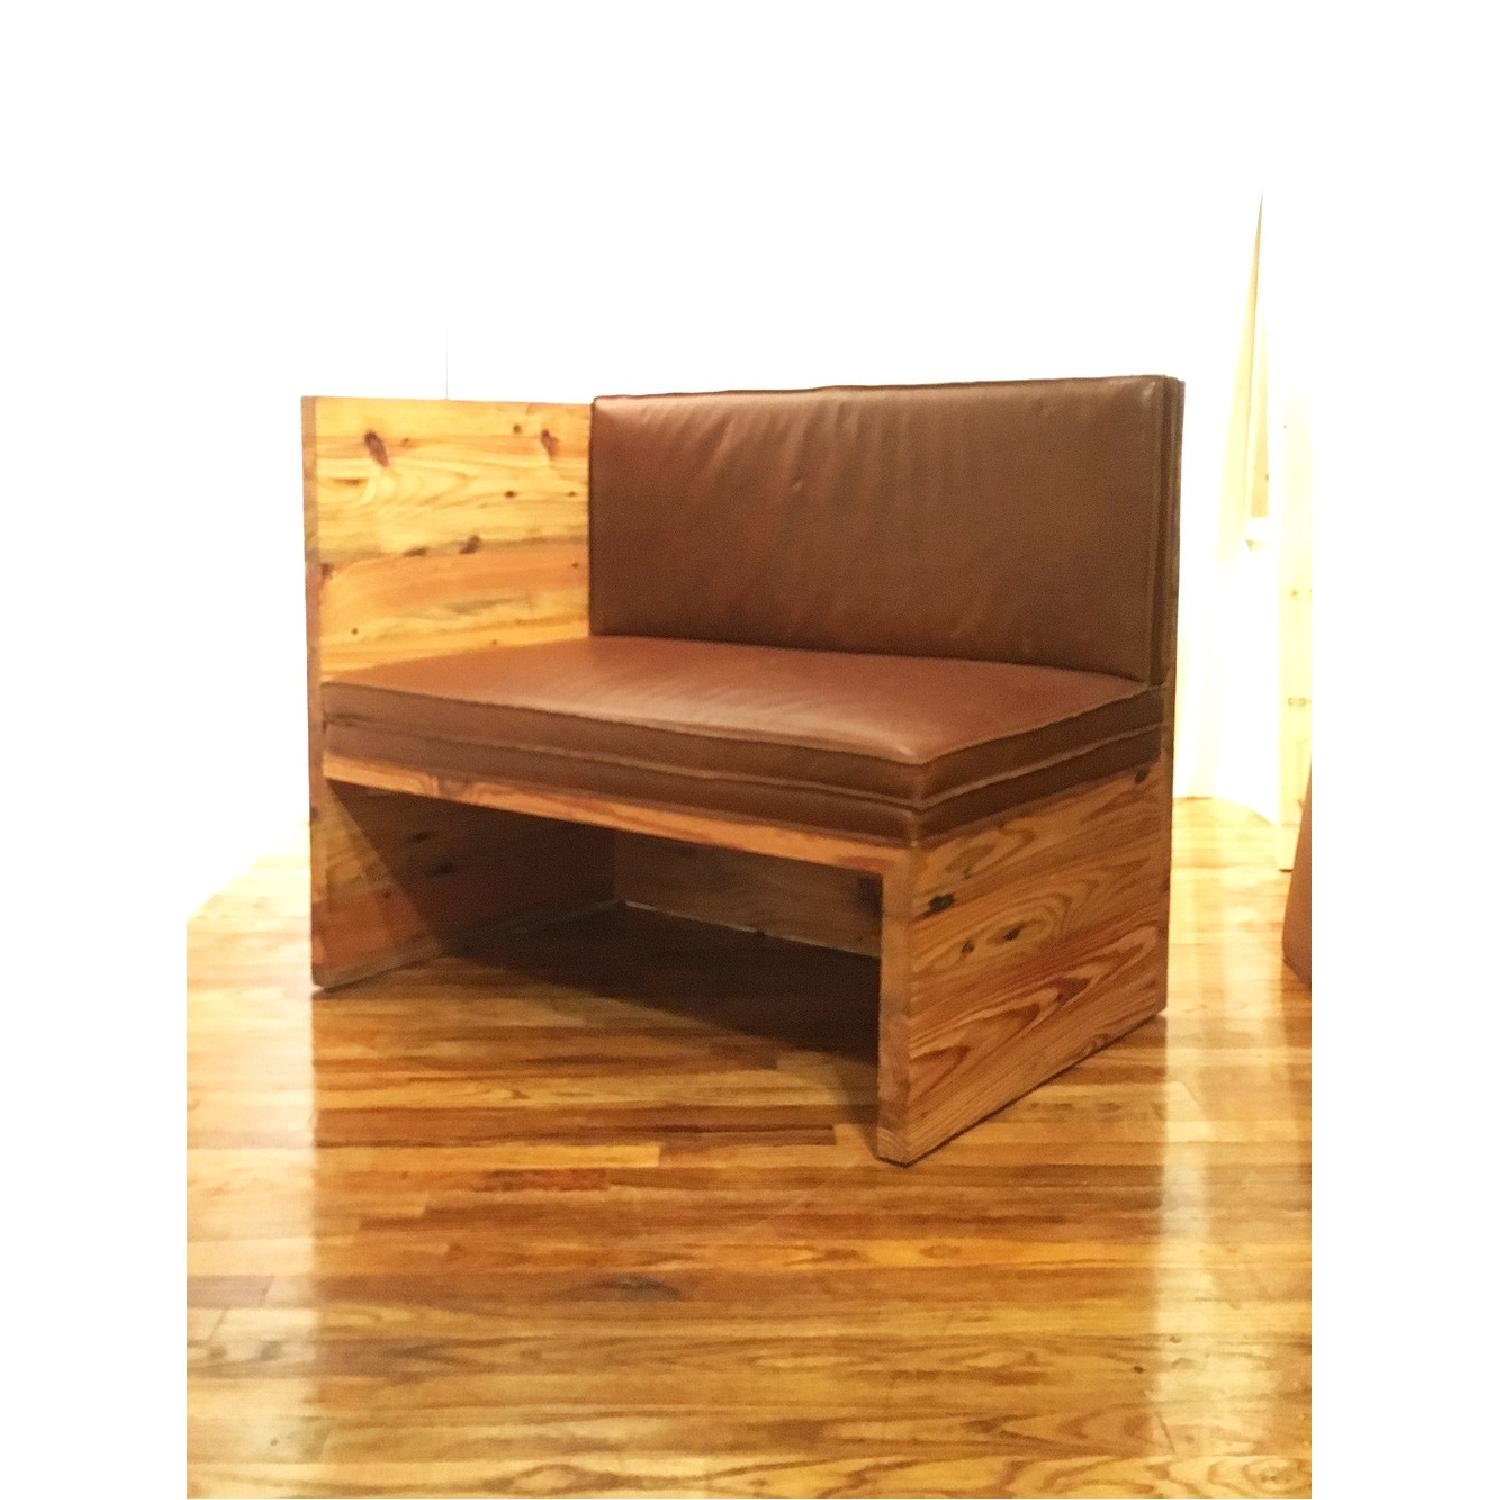 Solid Pine & Leather Donald Judd Inspired Bench